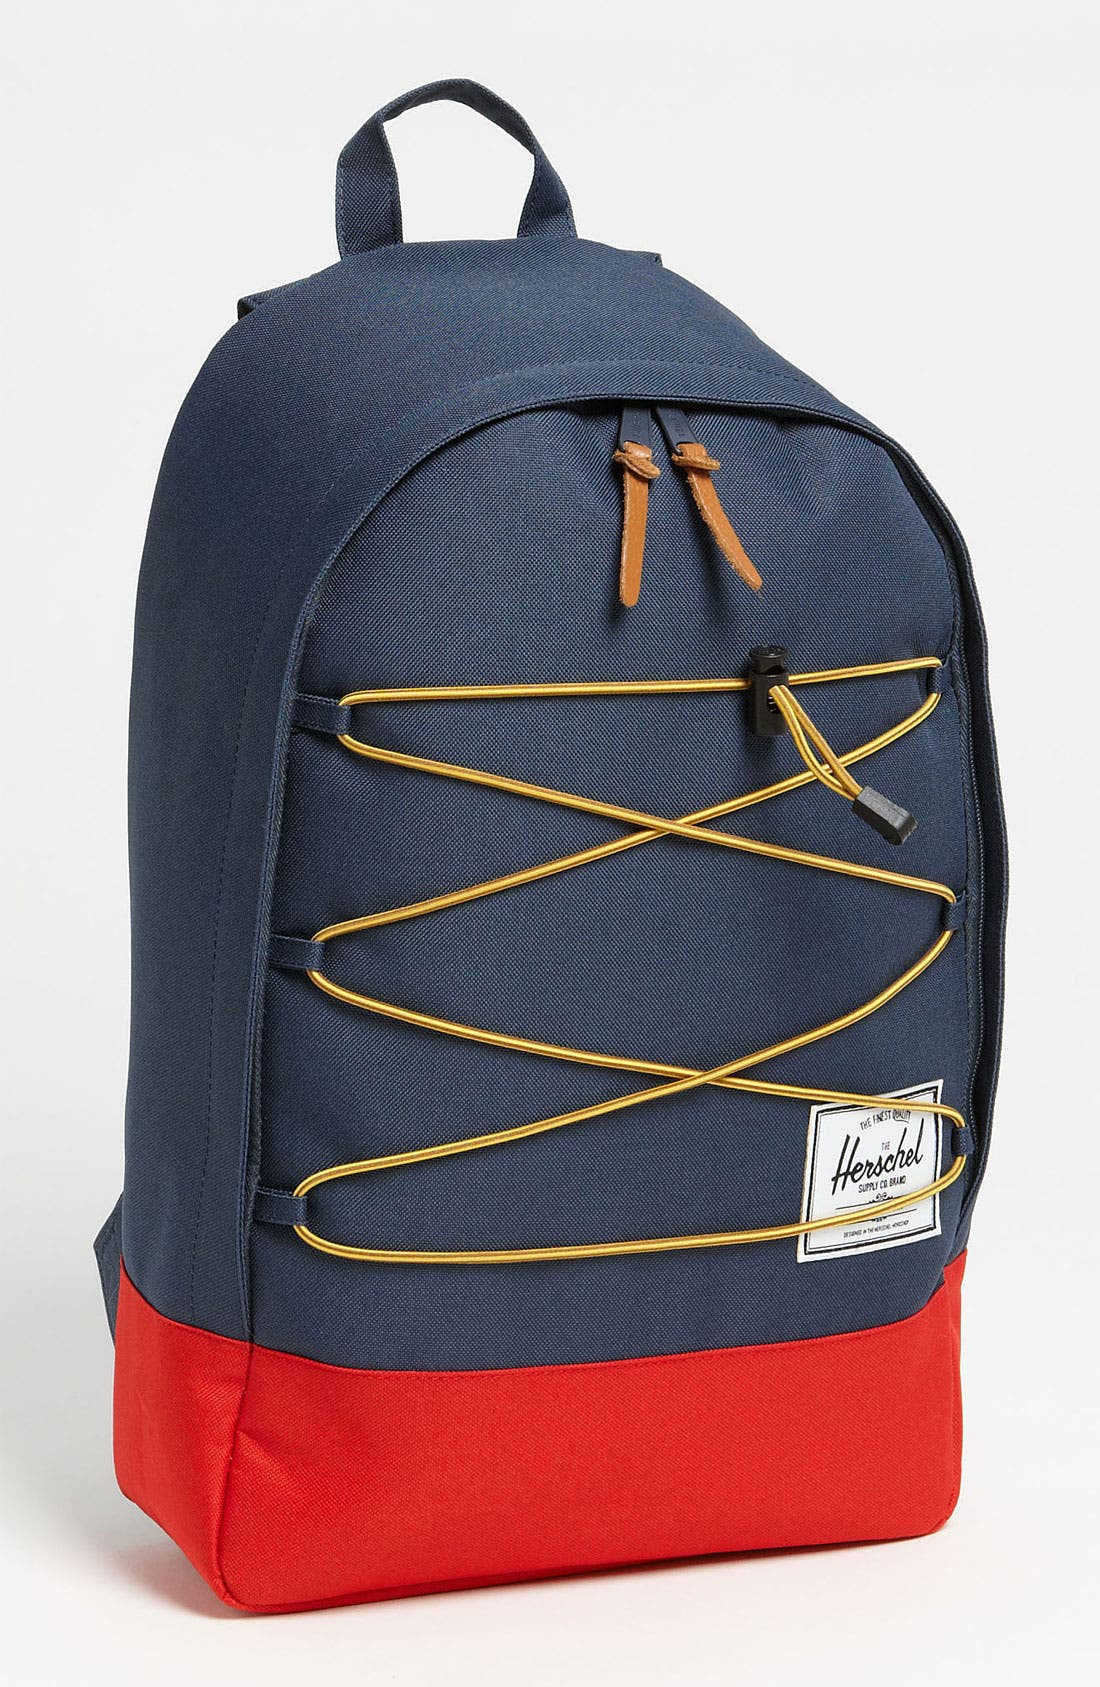 Main Image - Herschel Supply Co. 'Quarry' Backpack